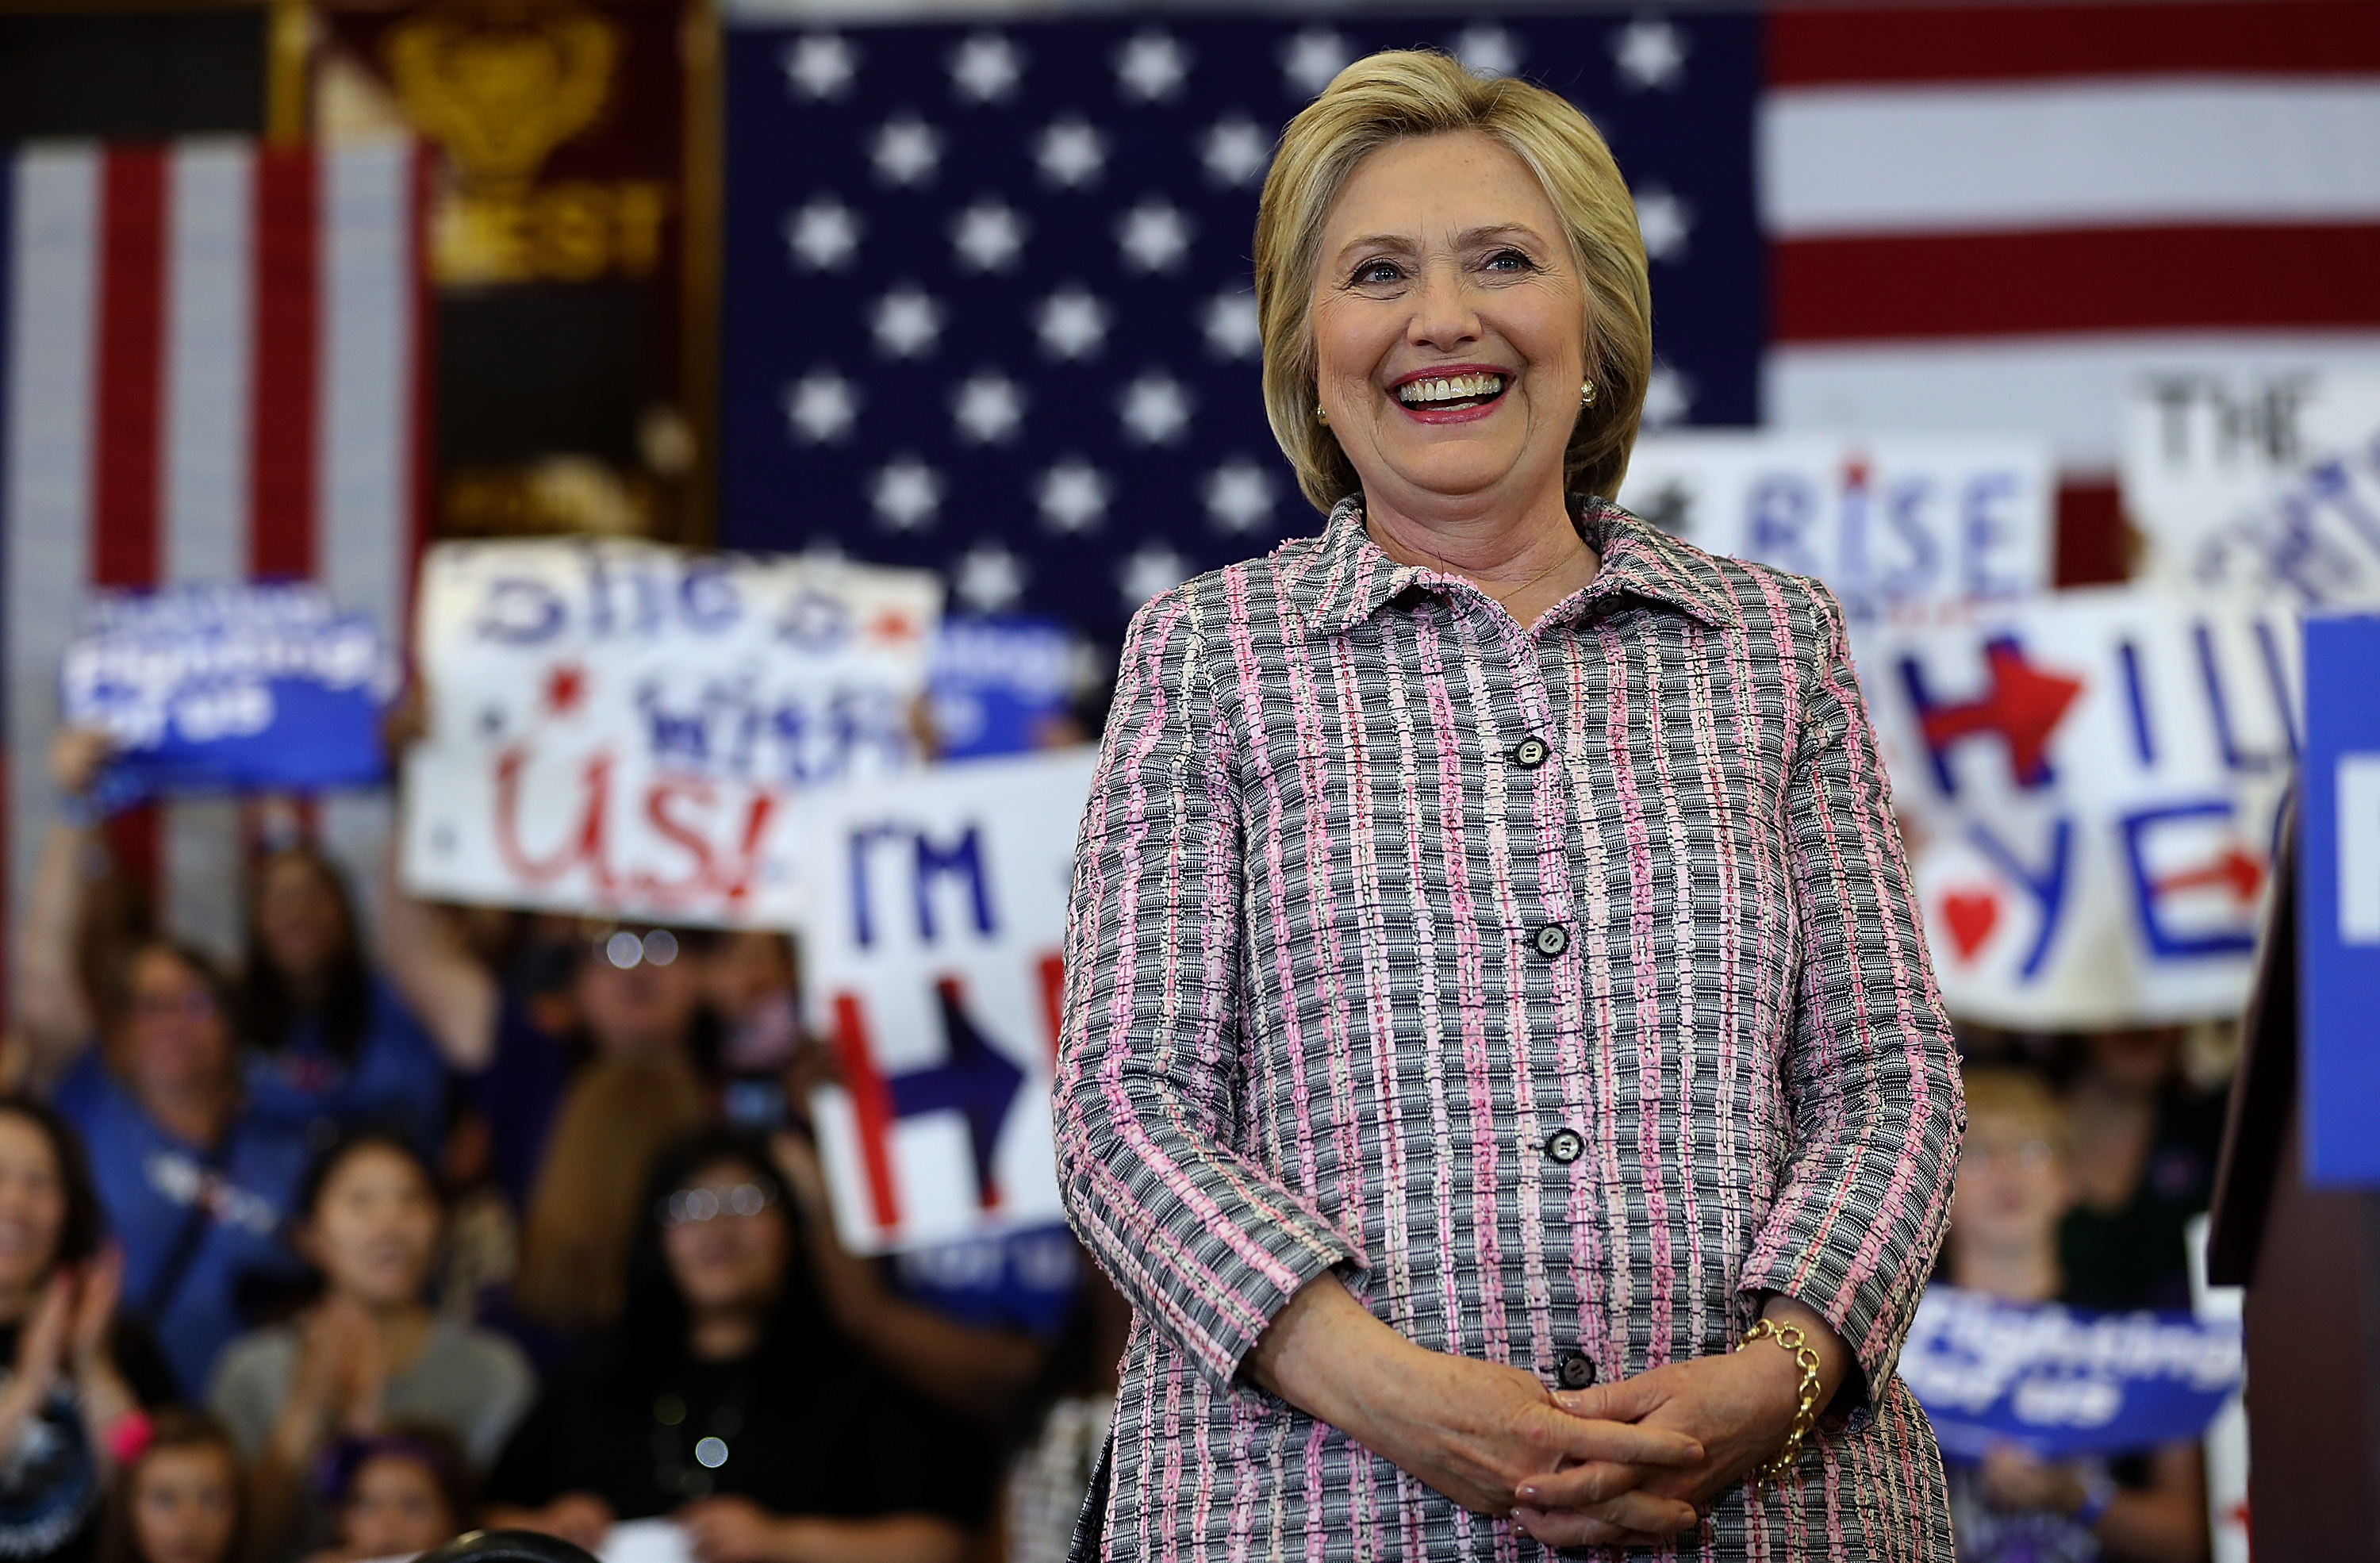 Democratic presidential candidate former Secretary of State Hillary Clinton looks on during a campaign rally at Sacramento City College on June 5, 2016 in Sacramento, California. The California primary is June 7.  Justin Sullivan—Getty Images